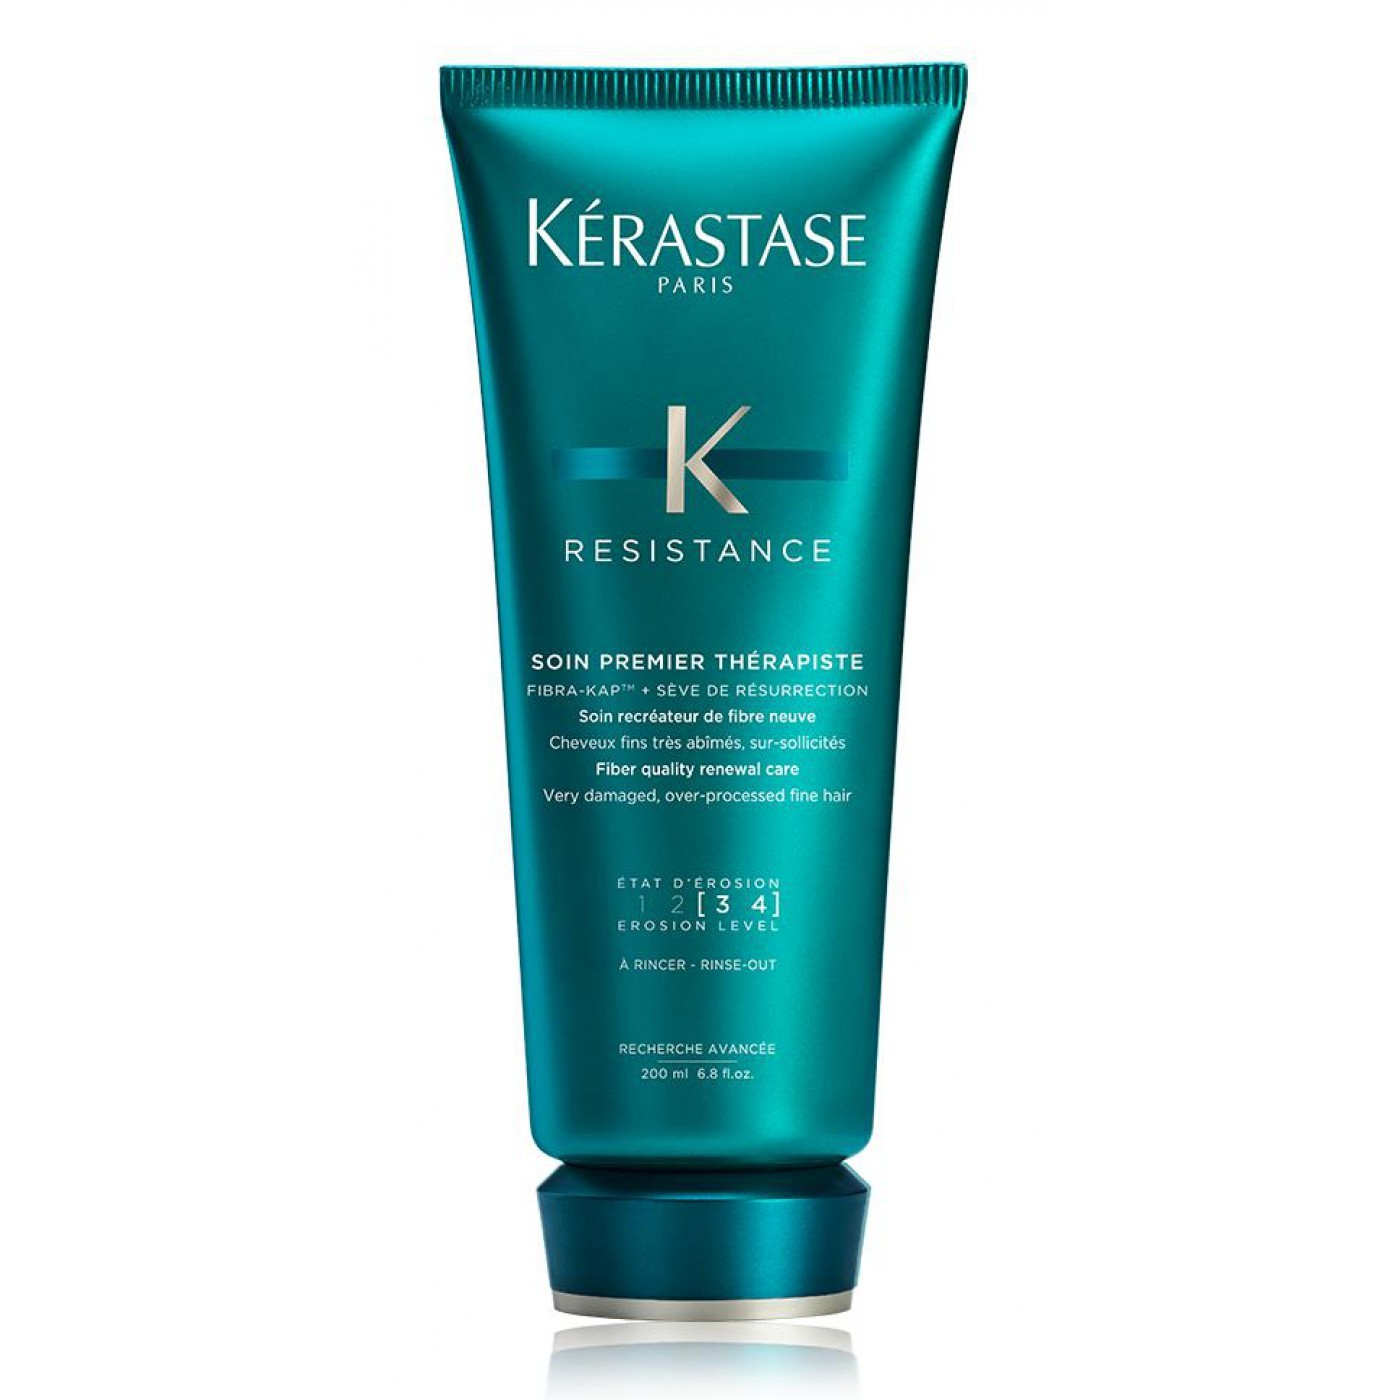 Kérastase - SOIN PREMIERE THERAPISTE - 200 ML